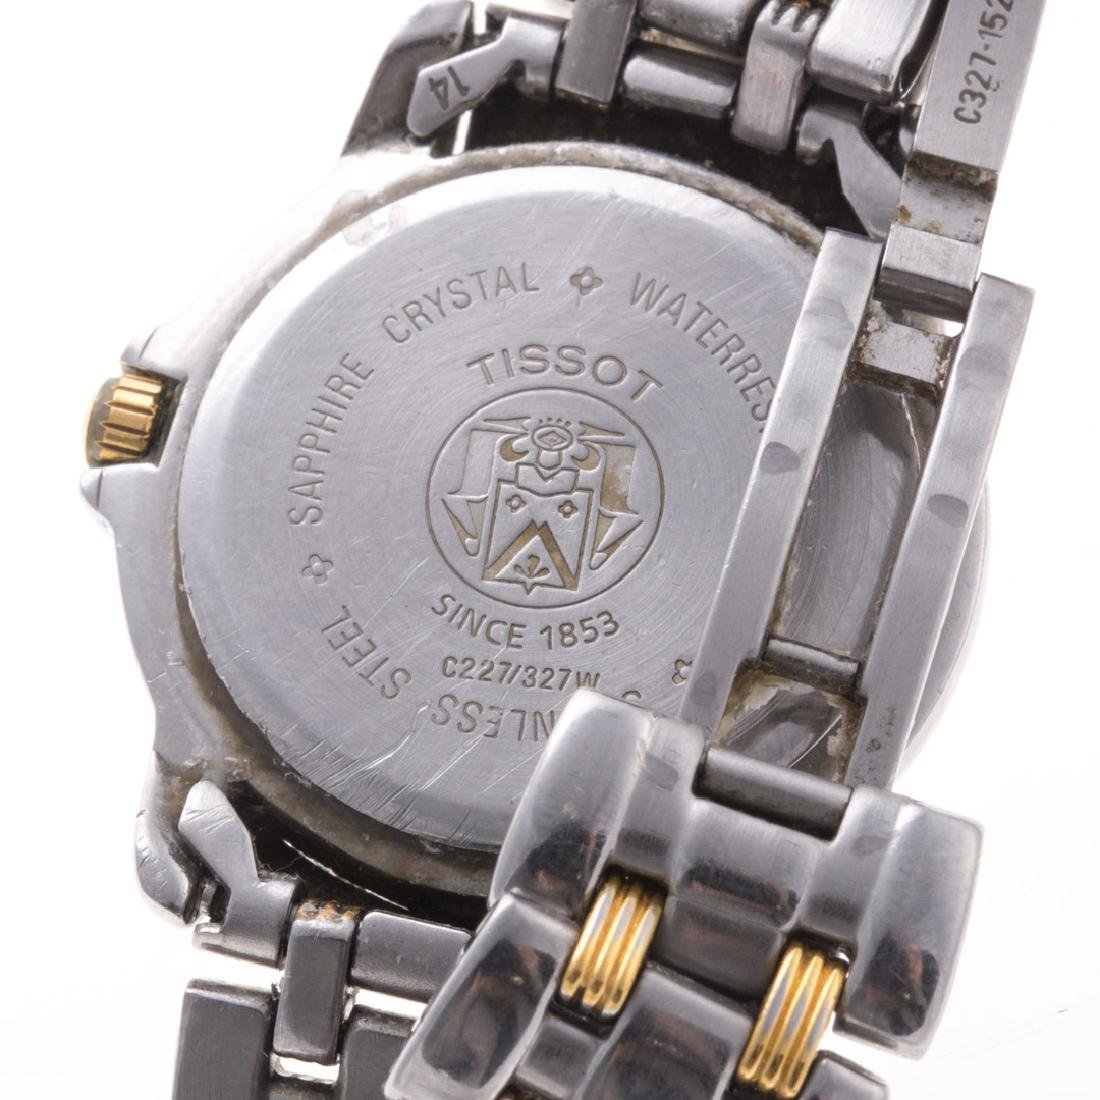 A Lady's 14K Merano & Two Tone Tissot Watches - 7